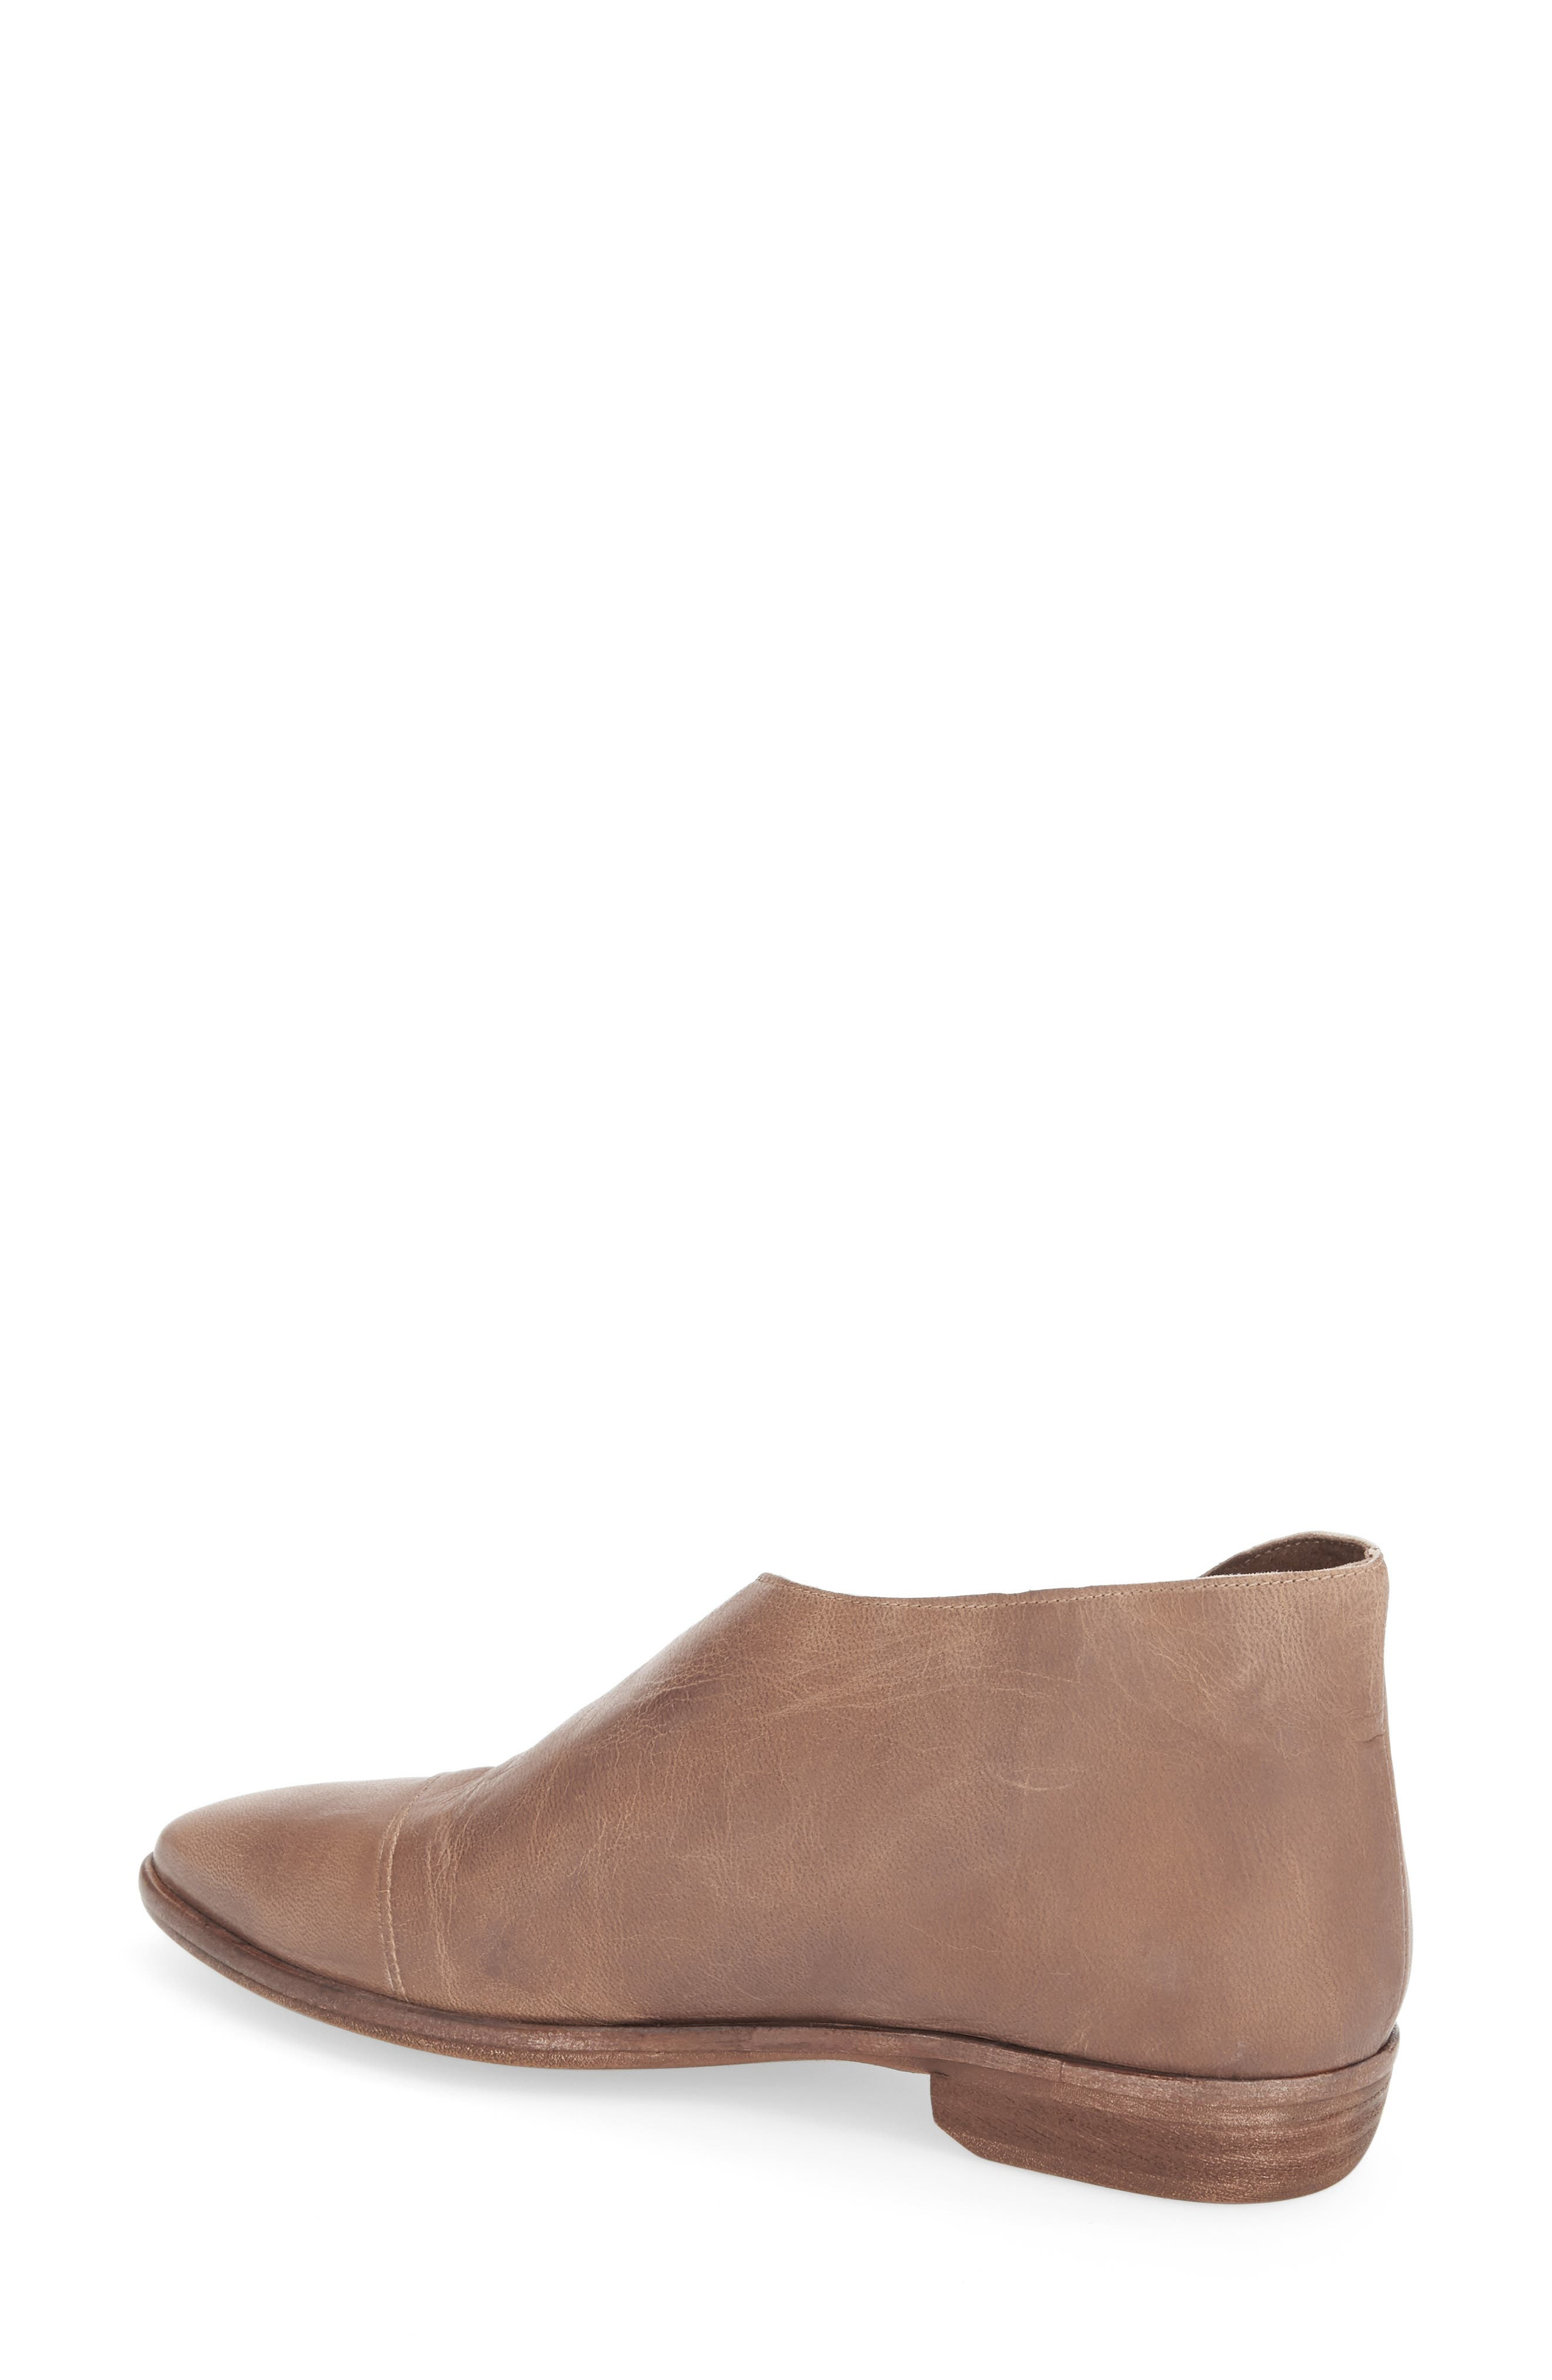 Free People Womens Clothing Nordstrom Wiring A Two Way Light Rose